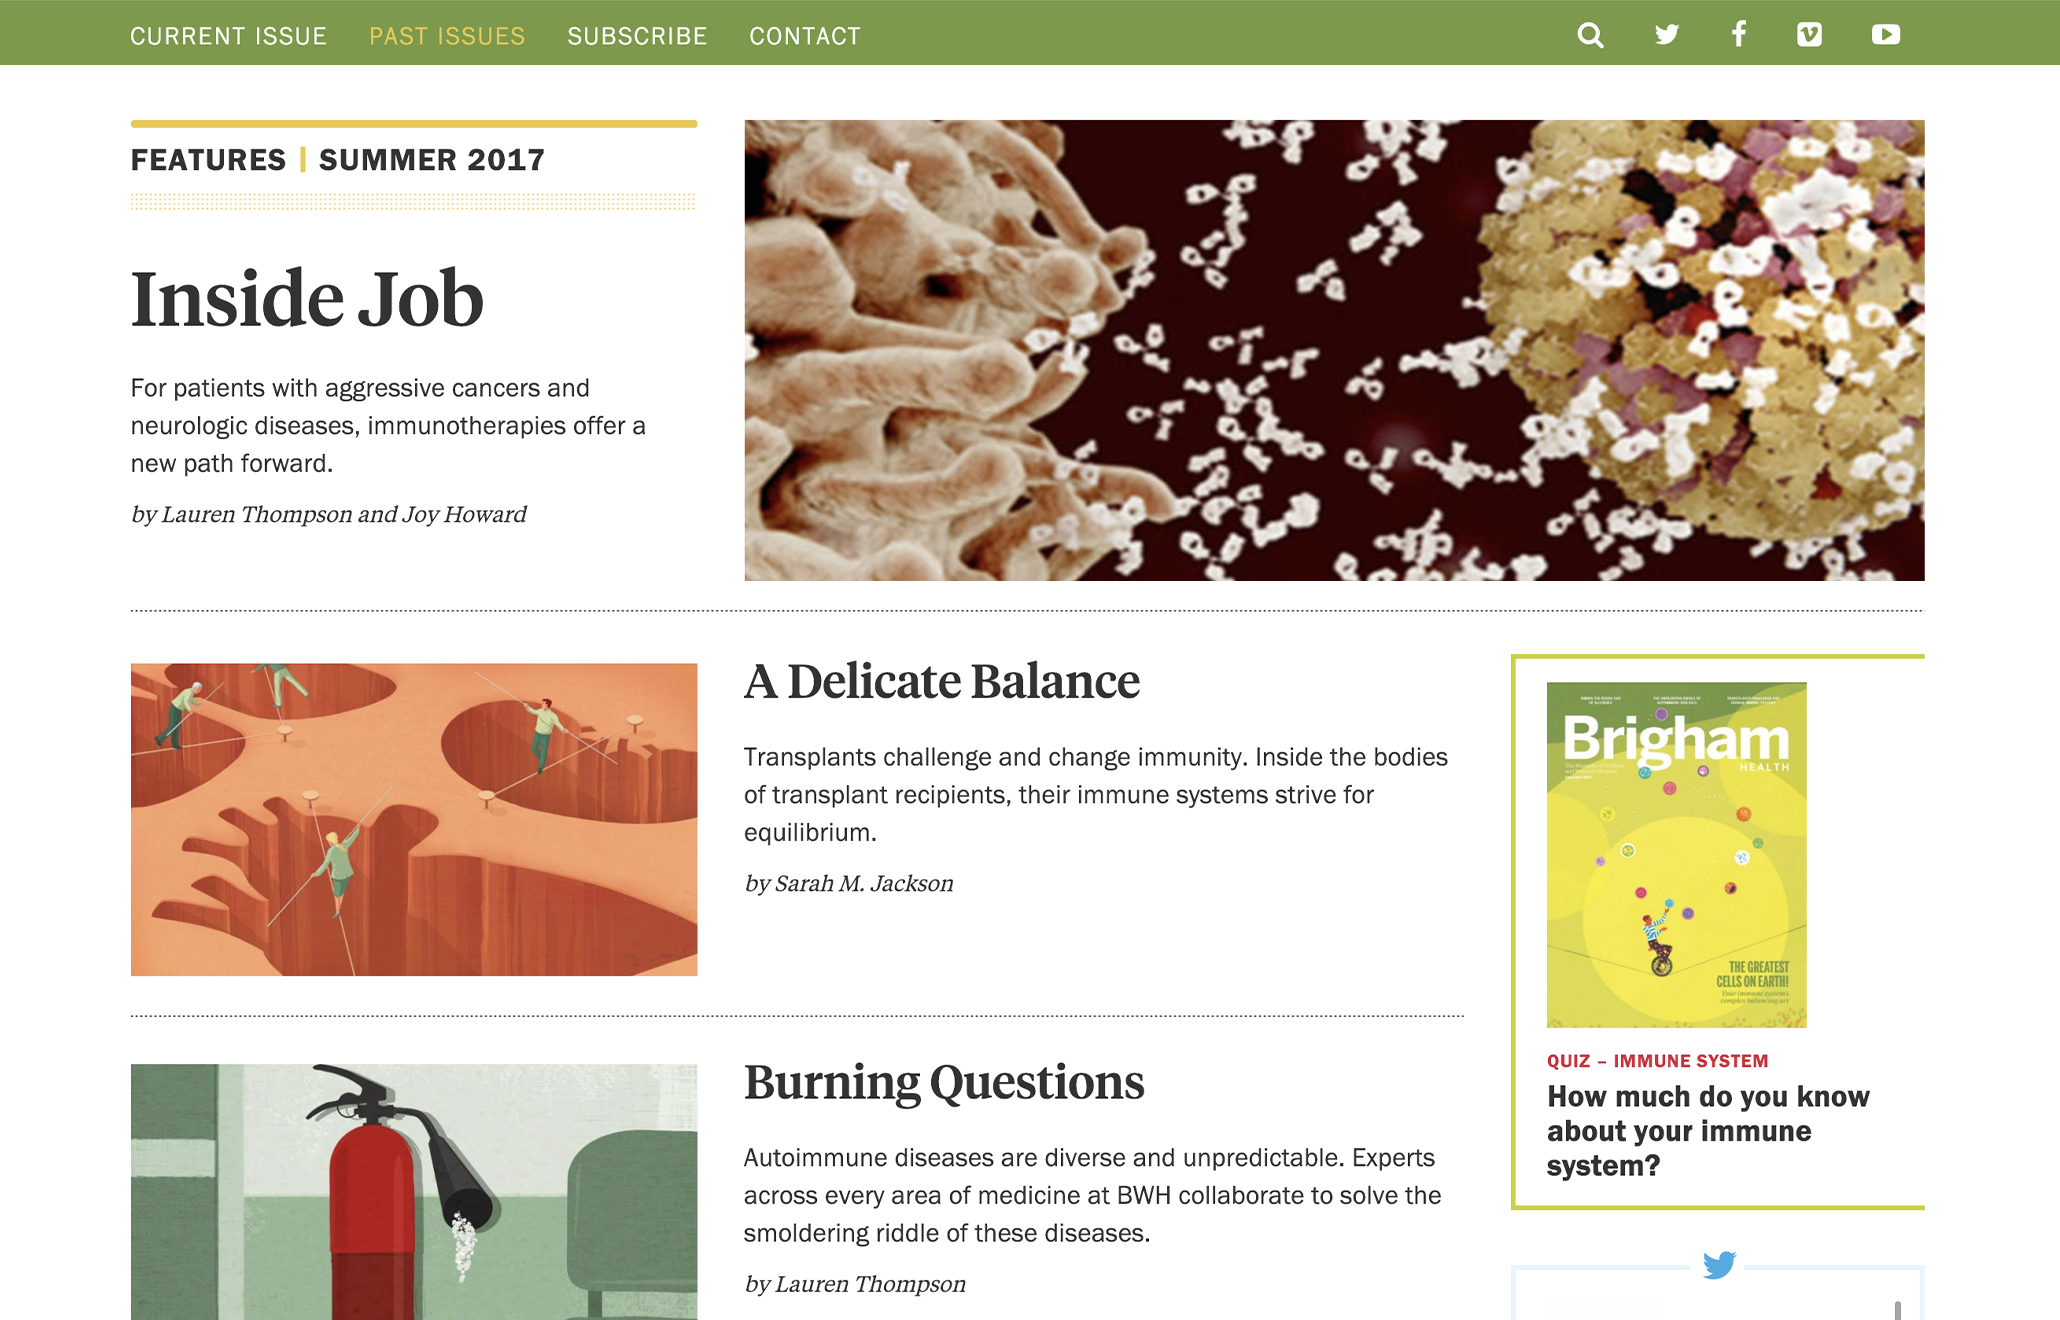 Brigham Health Magazine - Website Design CT | Taylor Design